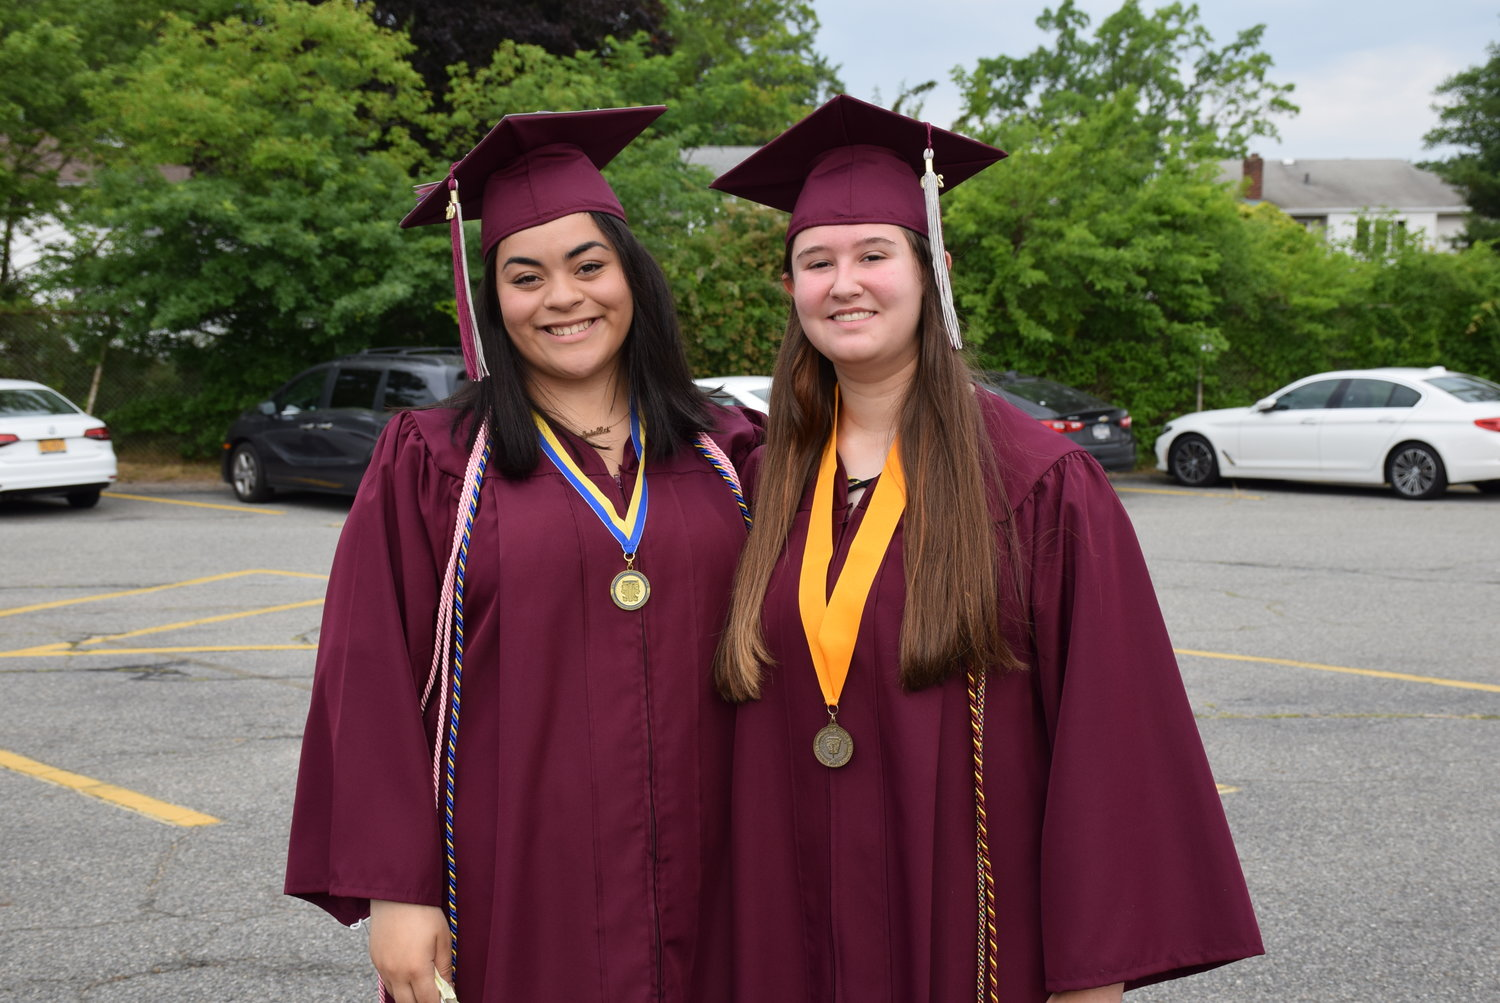 Friends Gabriella Carlotti, left, and Amanda Bremmer met in the parking lot ahead of their assigned graduation time.